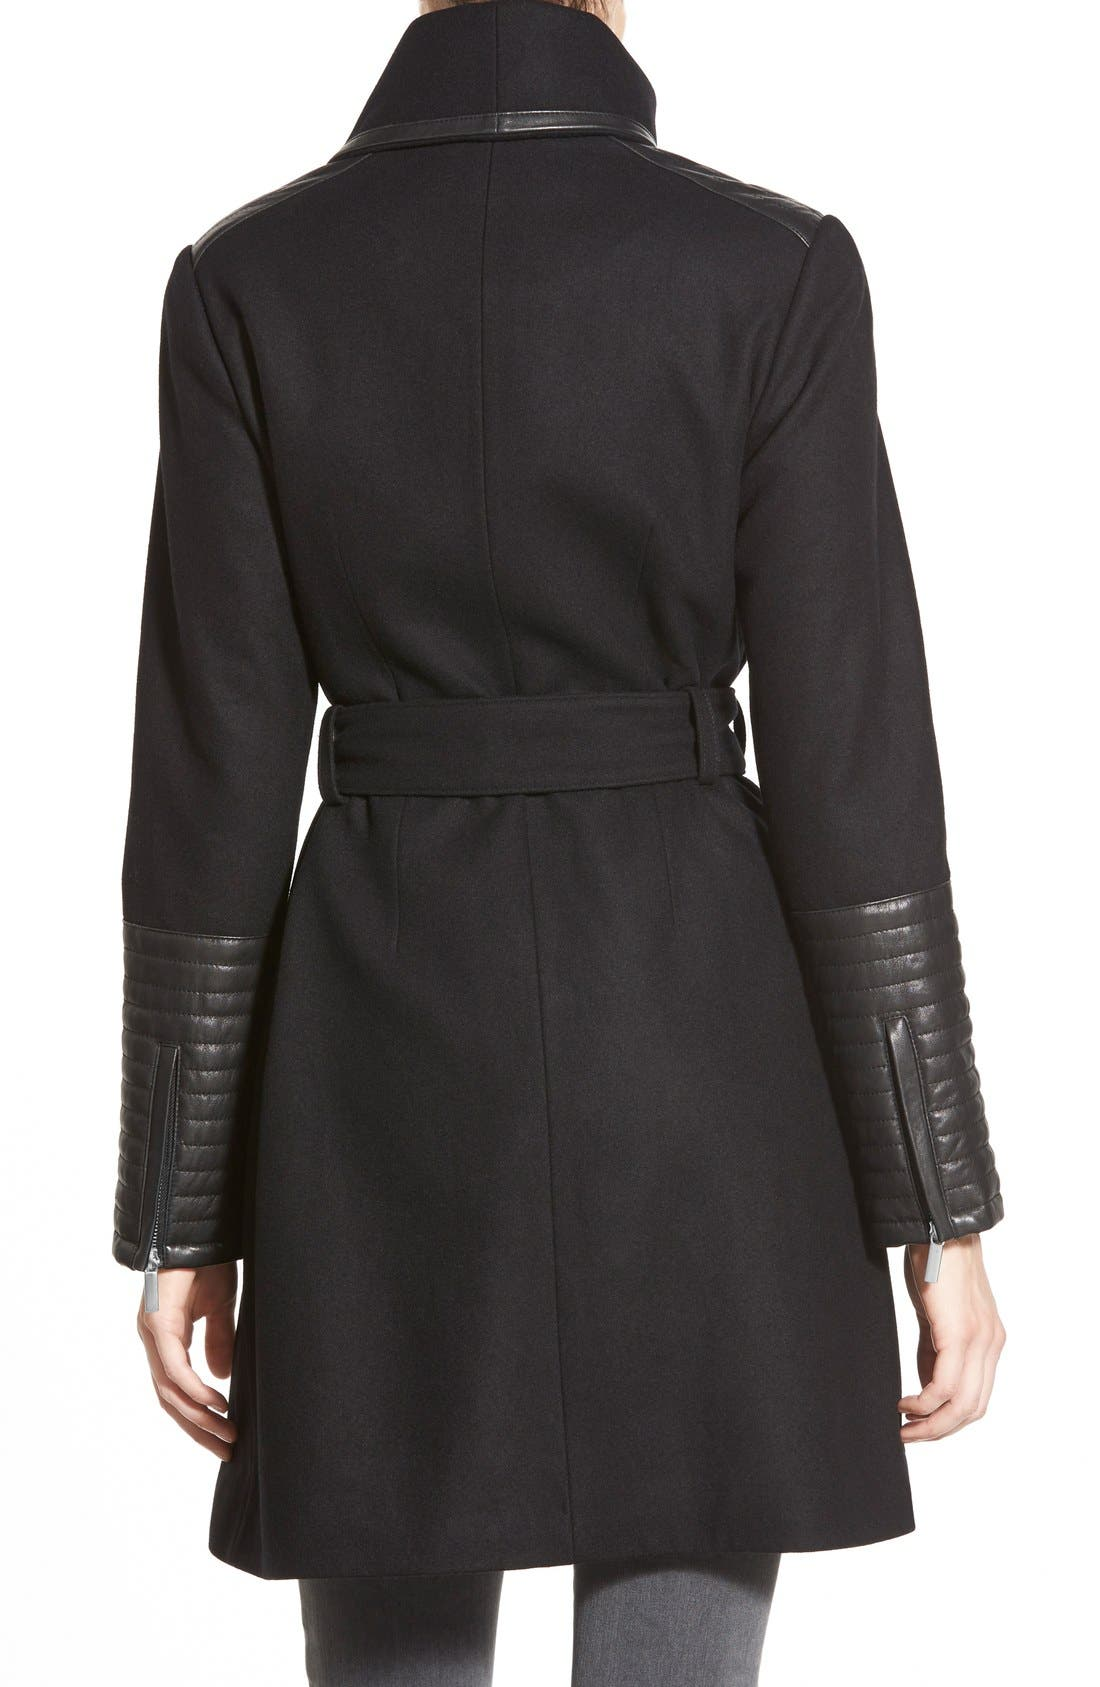 Alternate Image 2  - Belle Badgley Mischka 'Lorian' Faux Leather Trim Belted Asymmetrical Wool Blend Coat